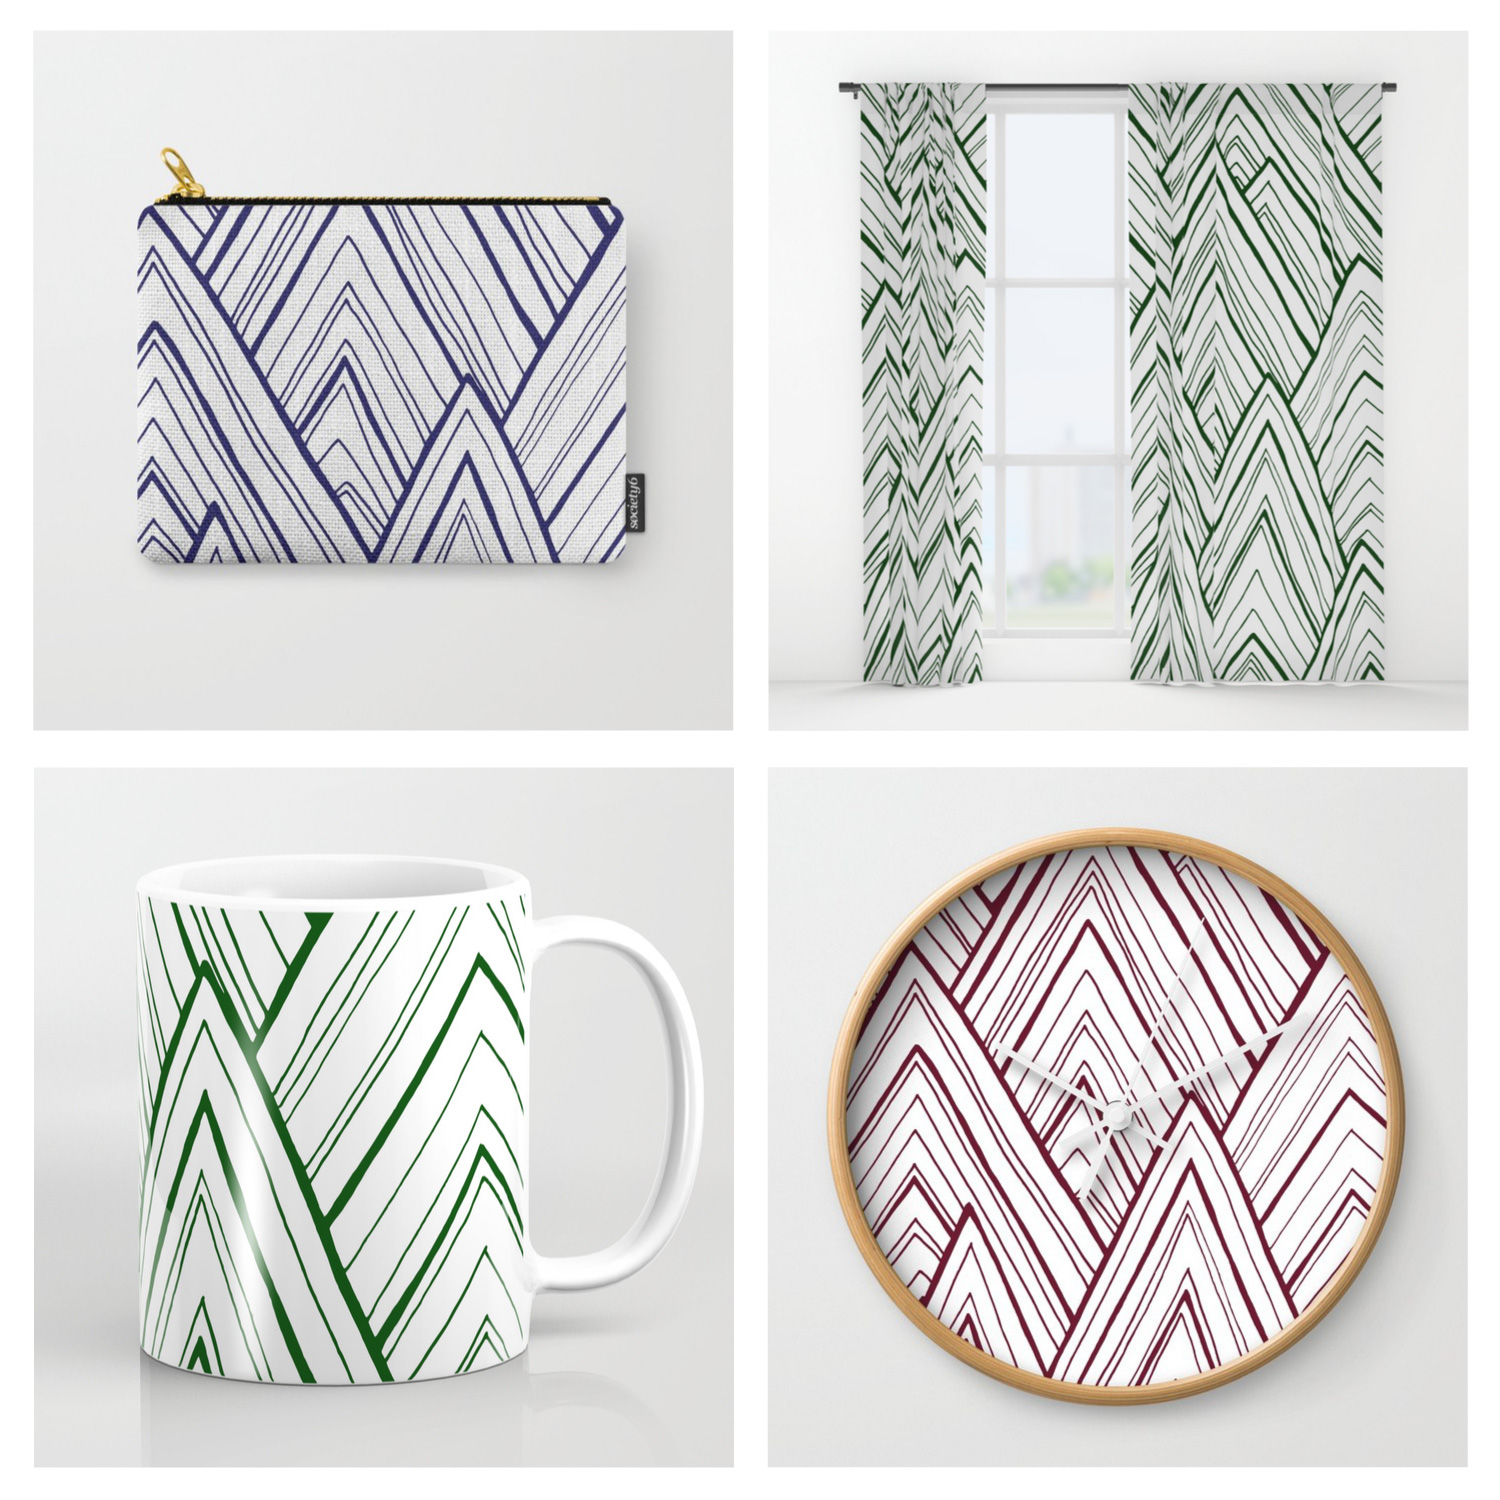 Selection of Society6 products featuring the Stripe Mountains design